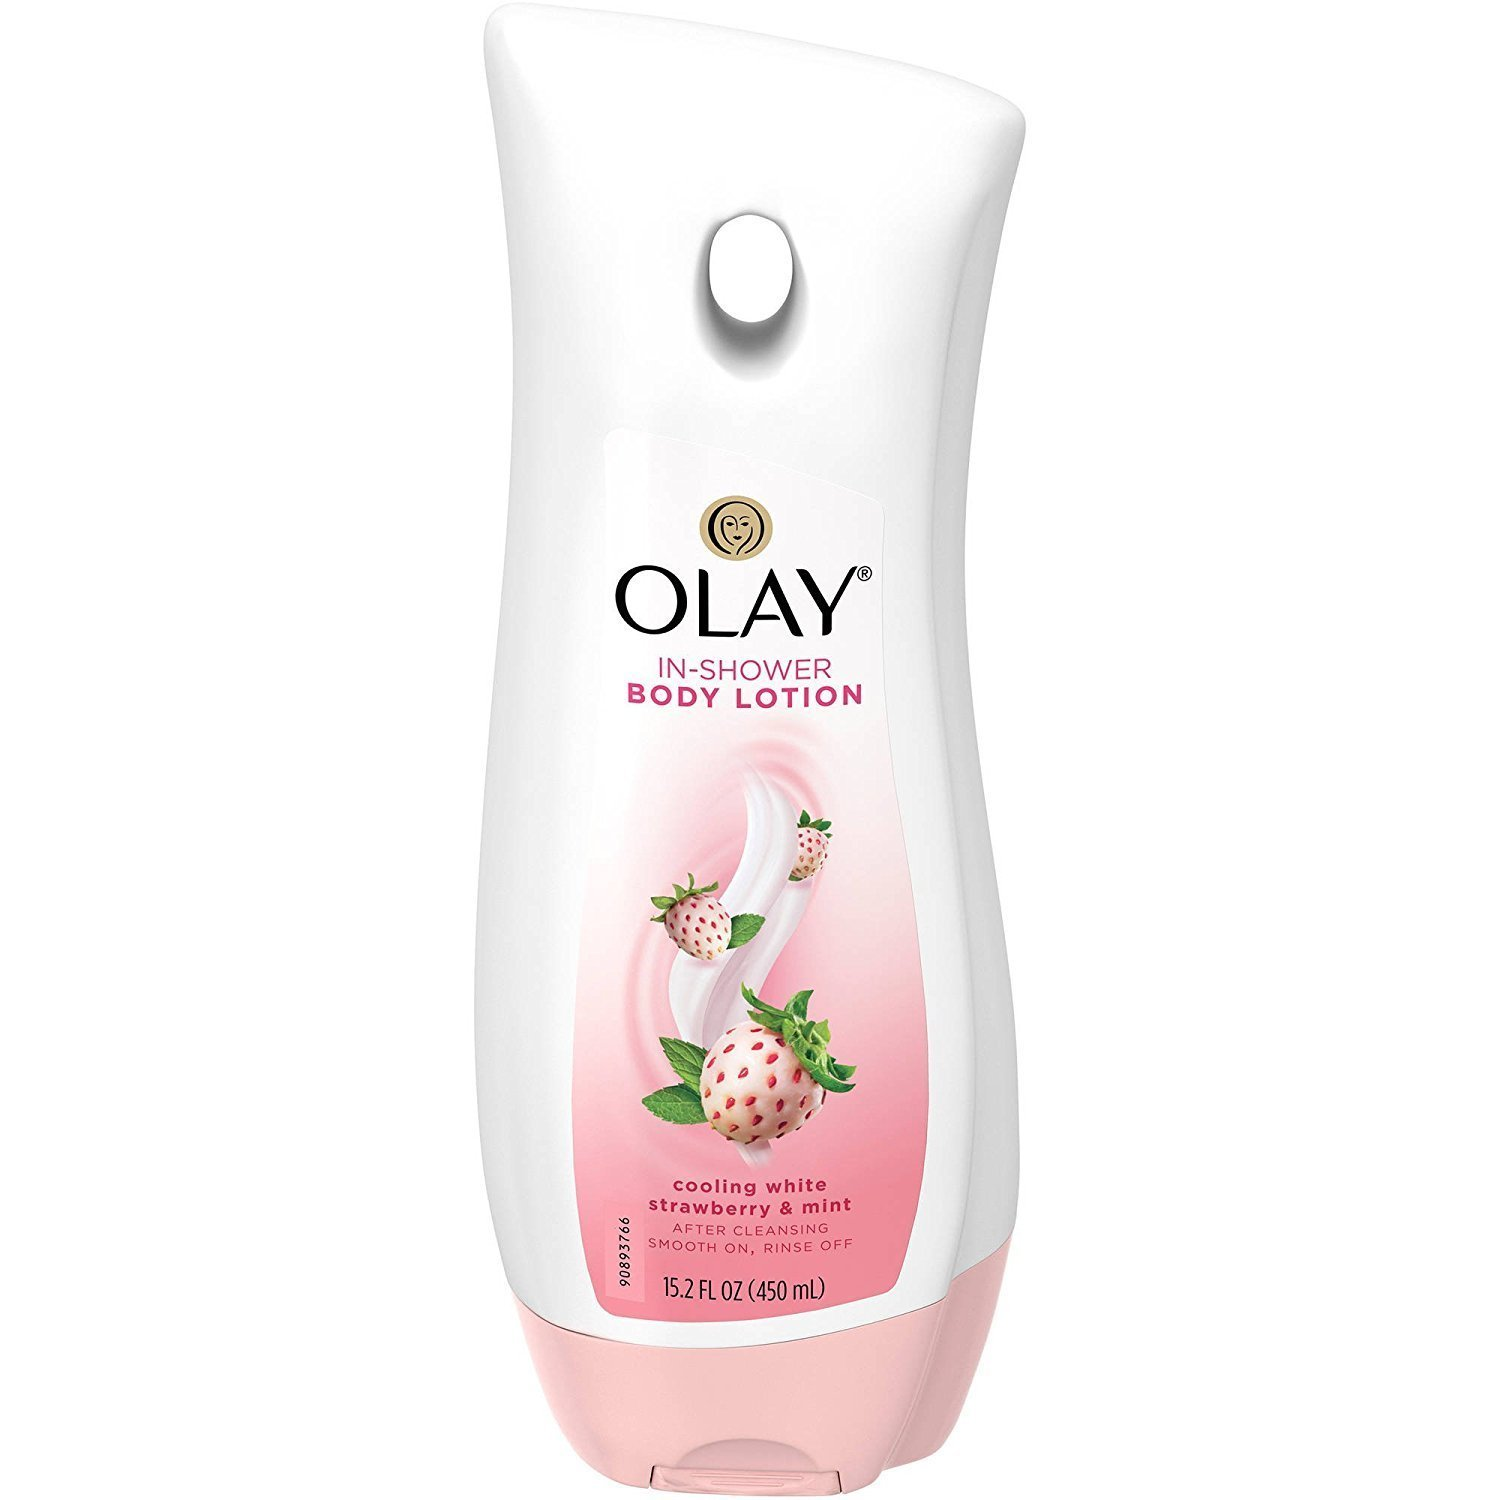 Olay In-Shower Body Lotion - Cooling White Strawberry & Mint - Net Wt. 15.2 FL OZ (450 mL) Per Bottle - One (1) Bottle by Olay